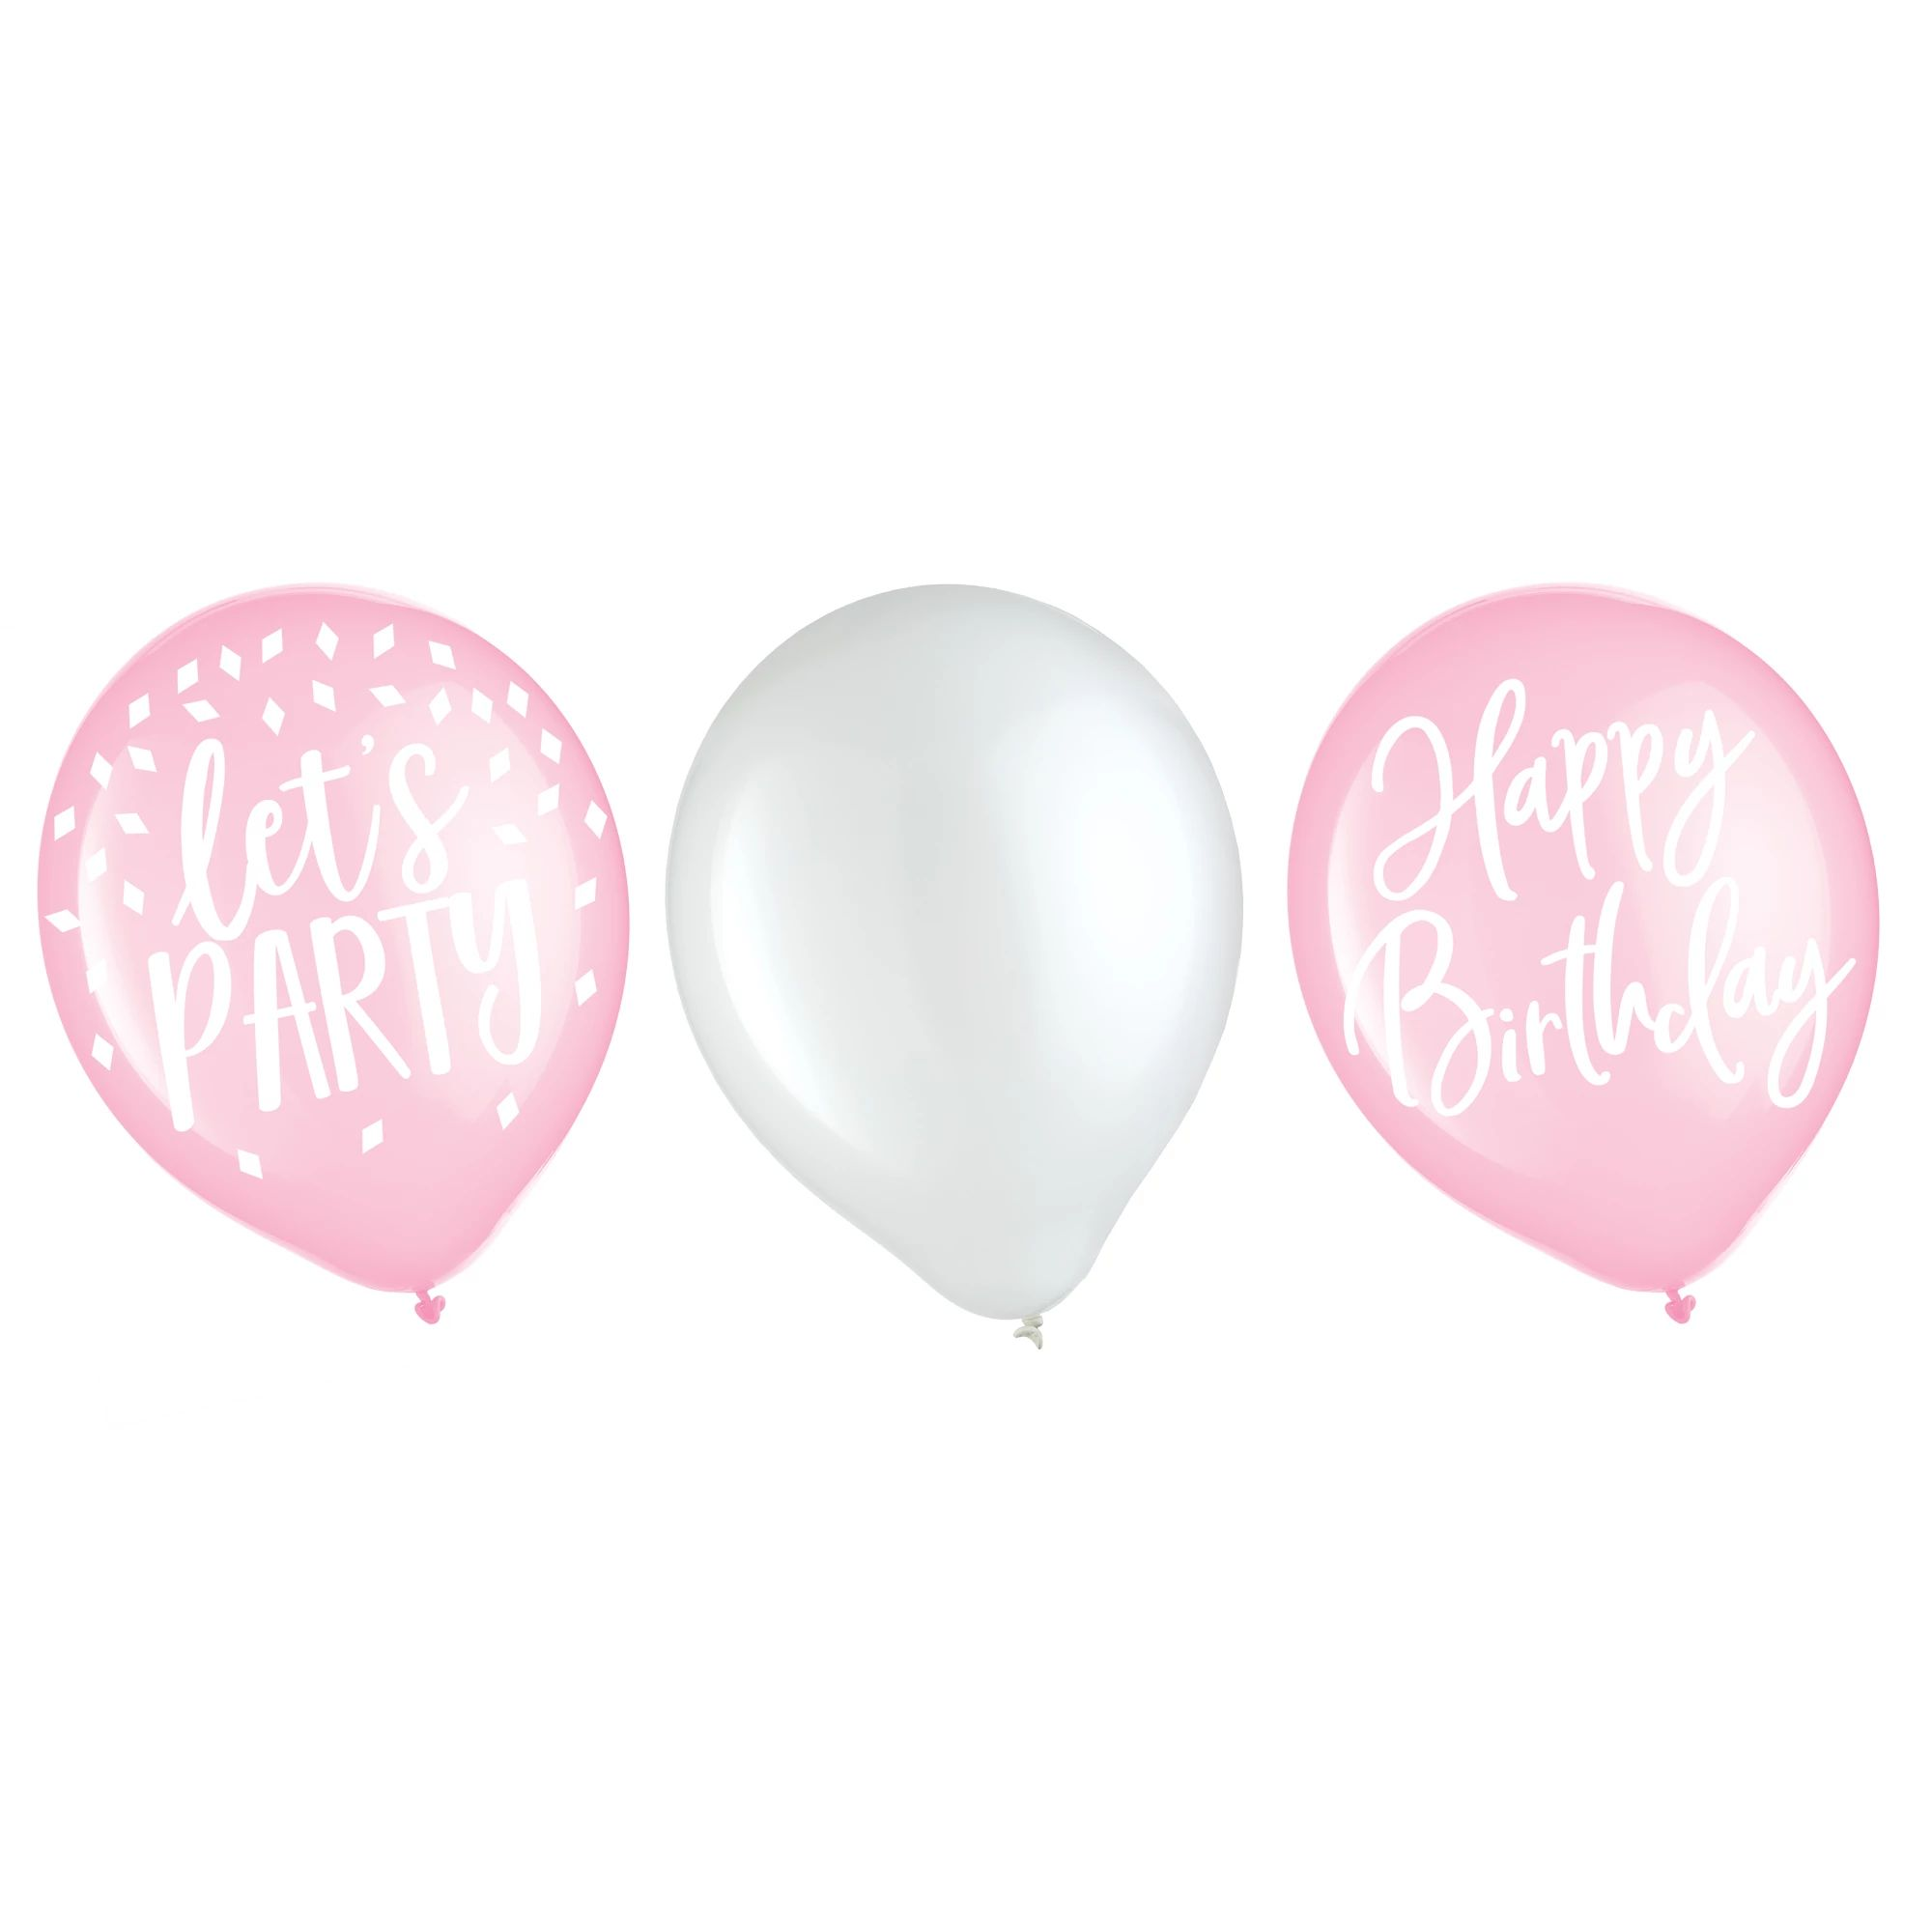 Blush Birthday Latex Balloons 15ct